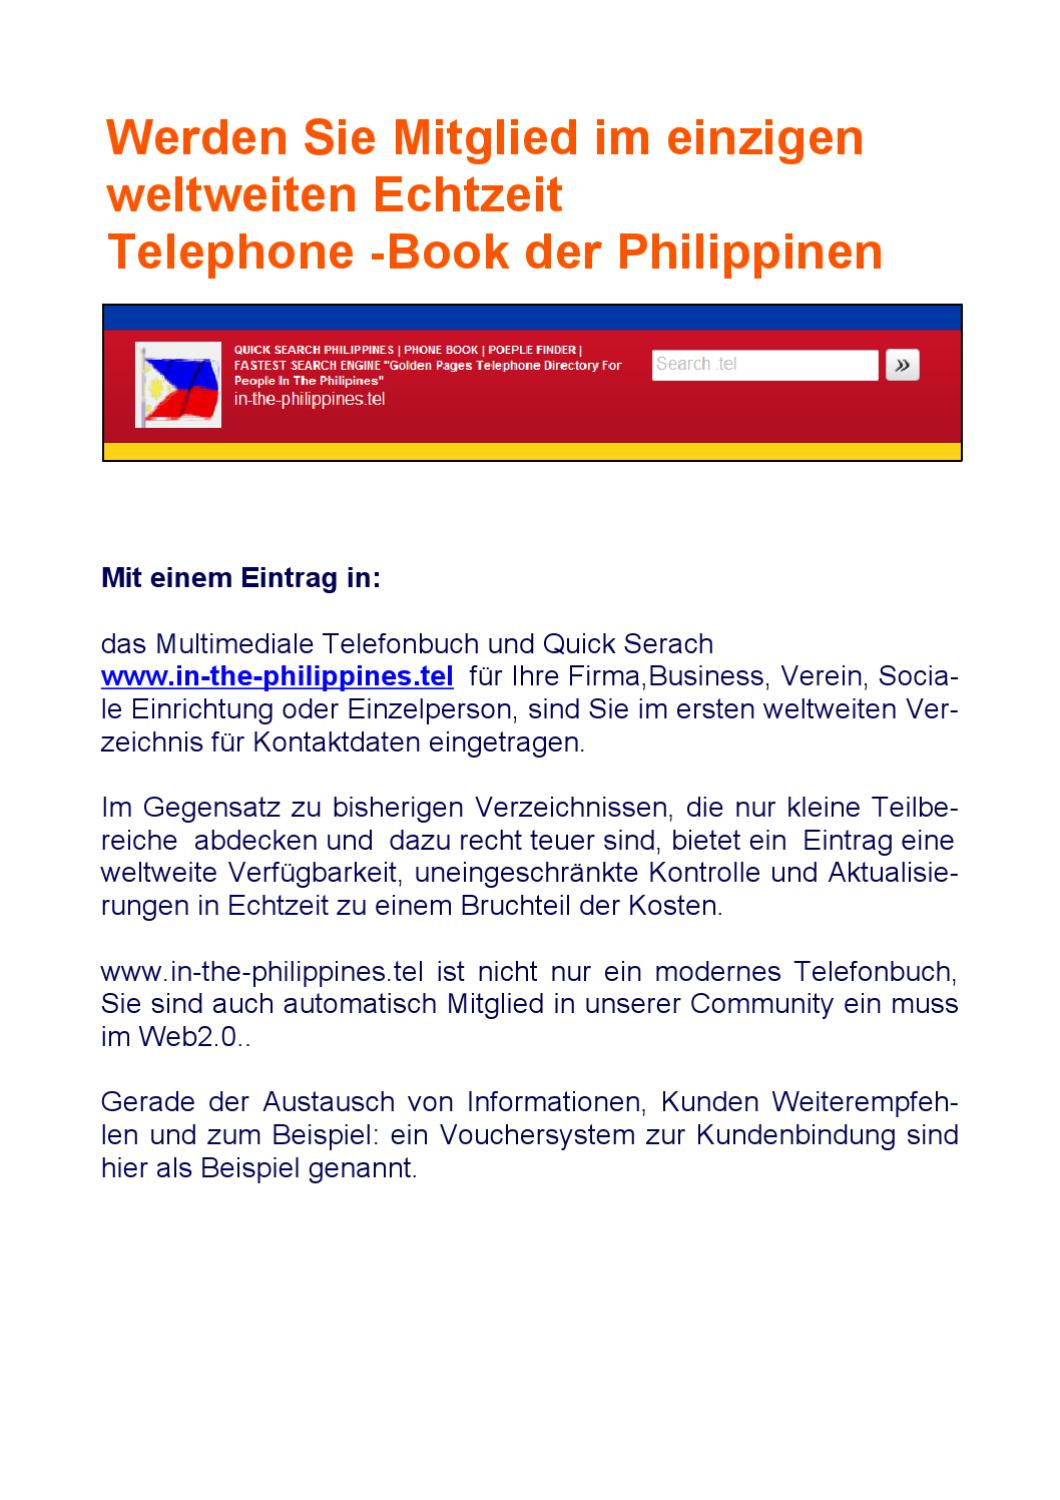 Philippines Phone Book by Falko labetzsch - issuu